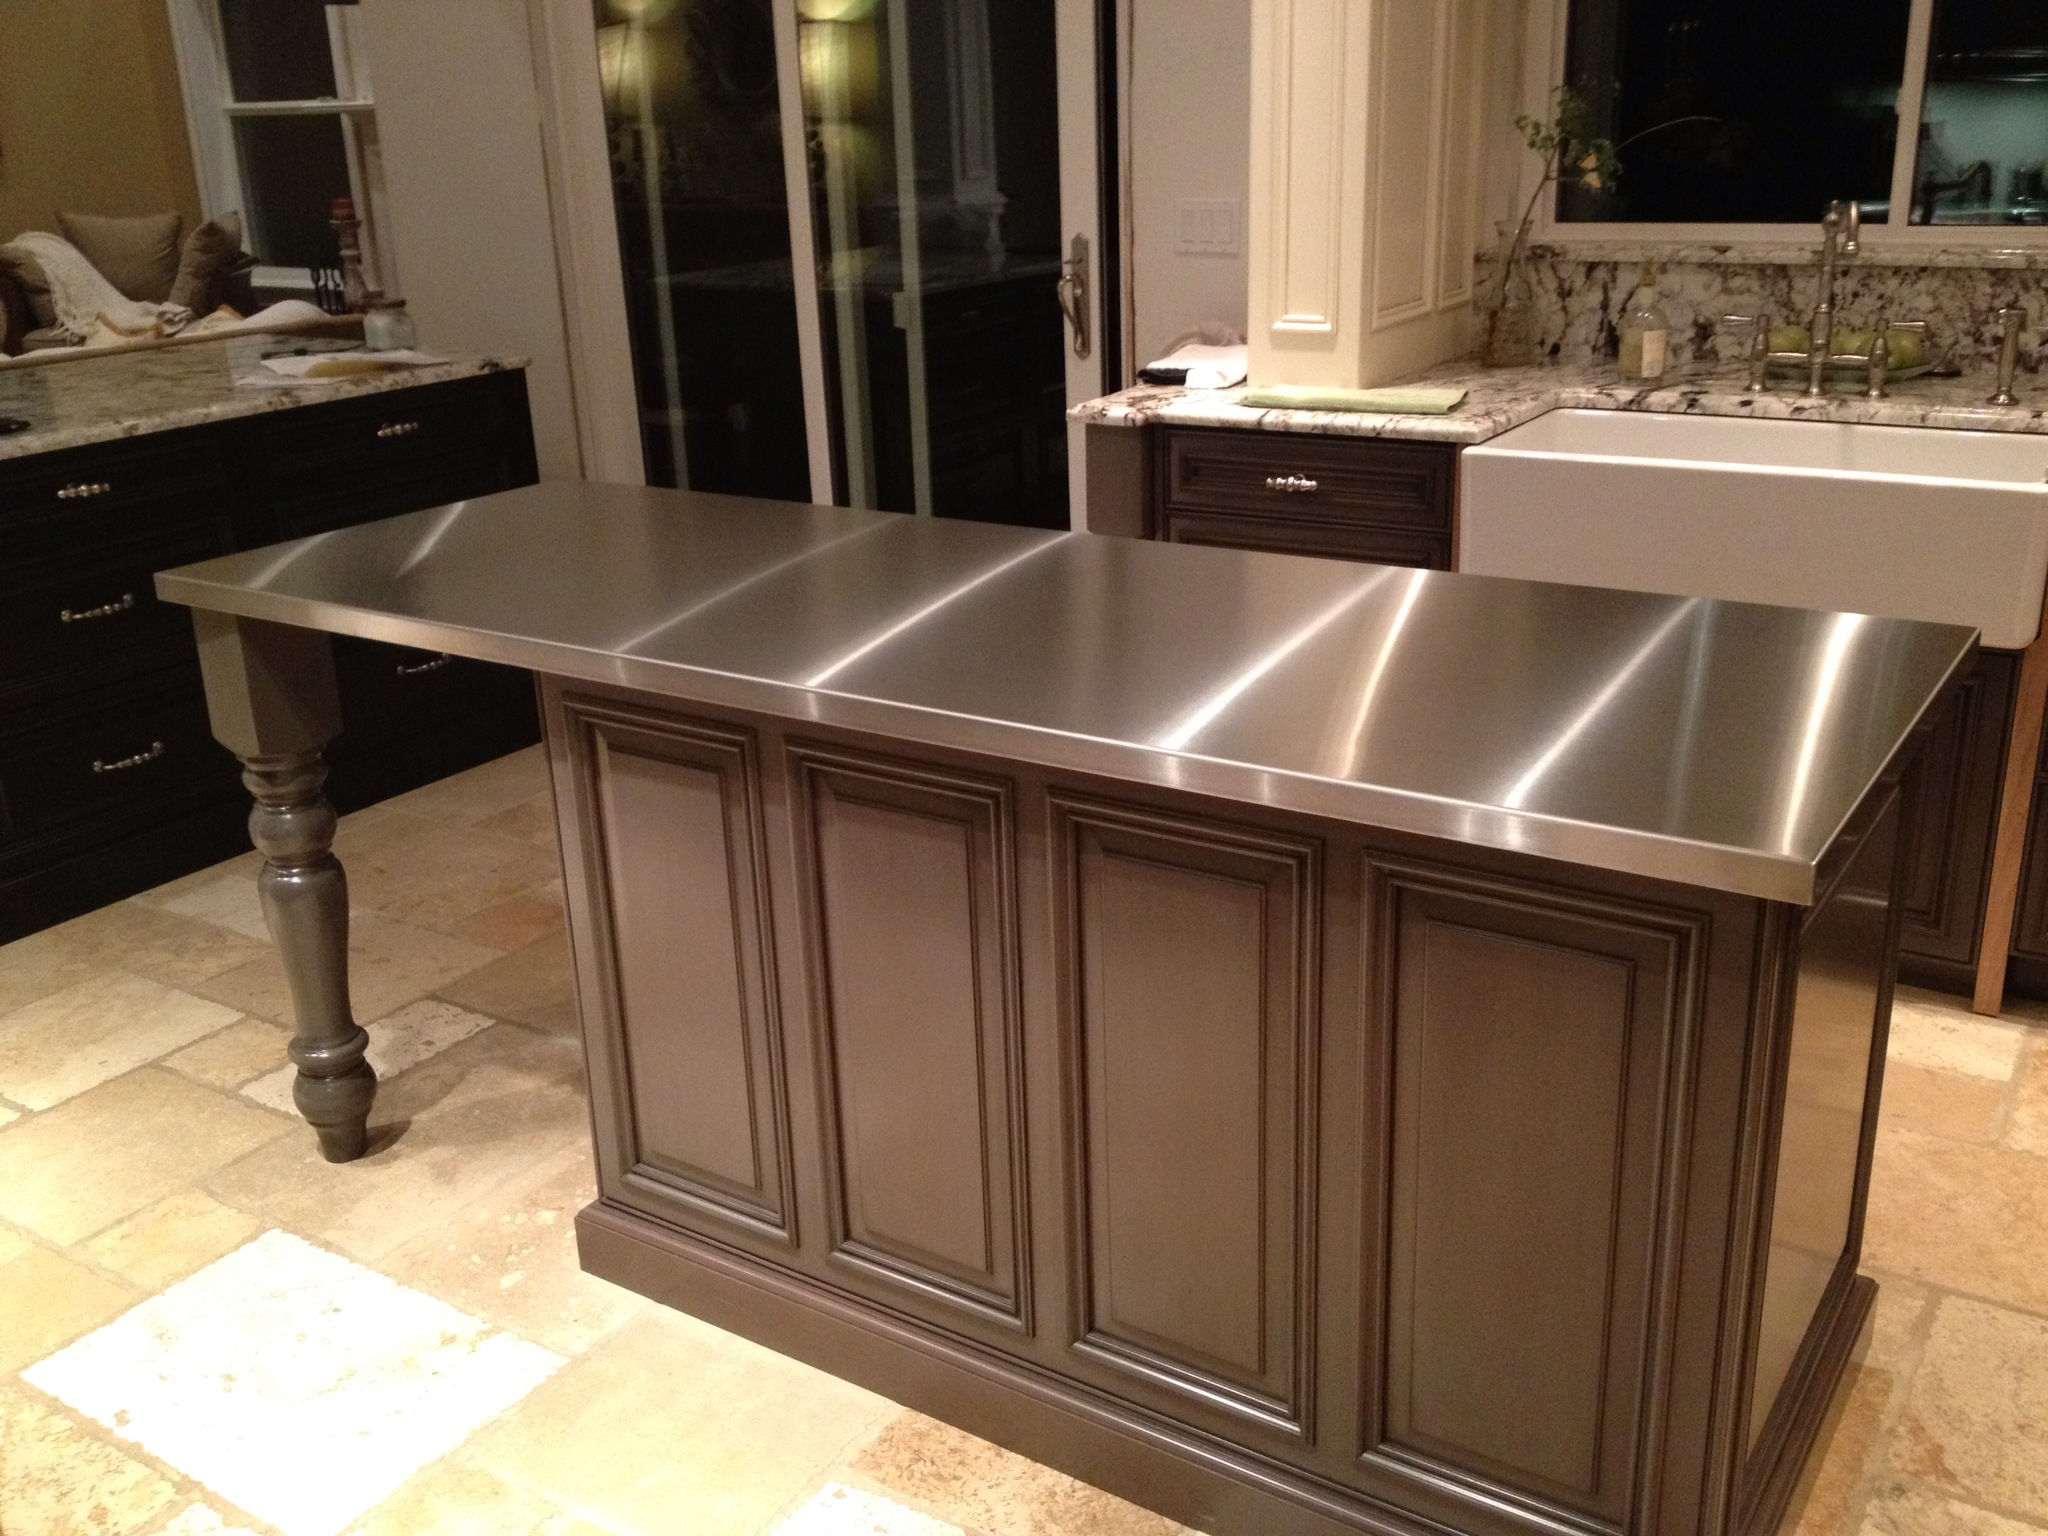 sinks with hei stainless elkay sink countertop rnd classic and lustertone steel custom countertops resmode x